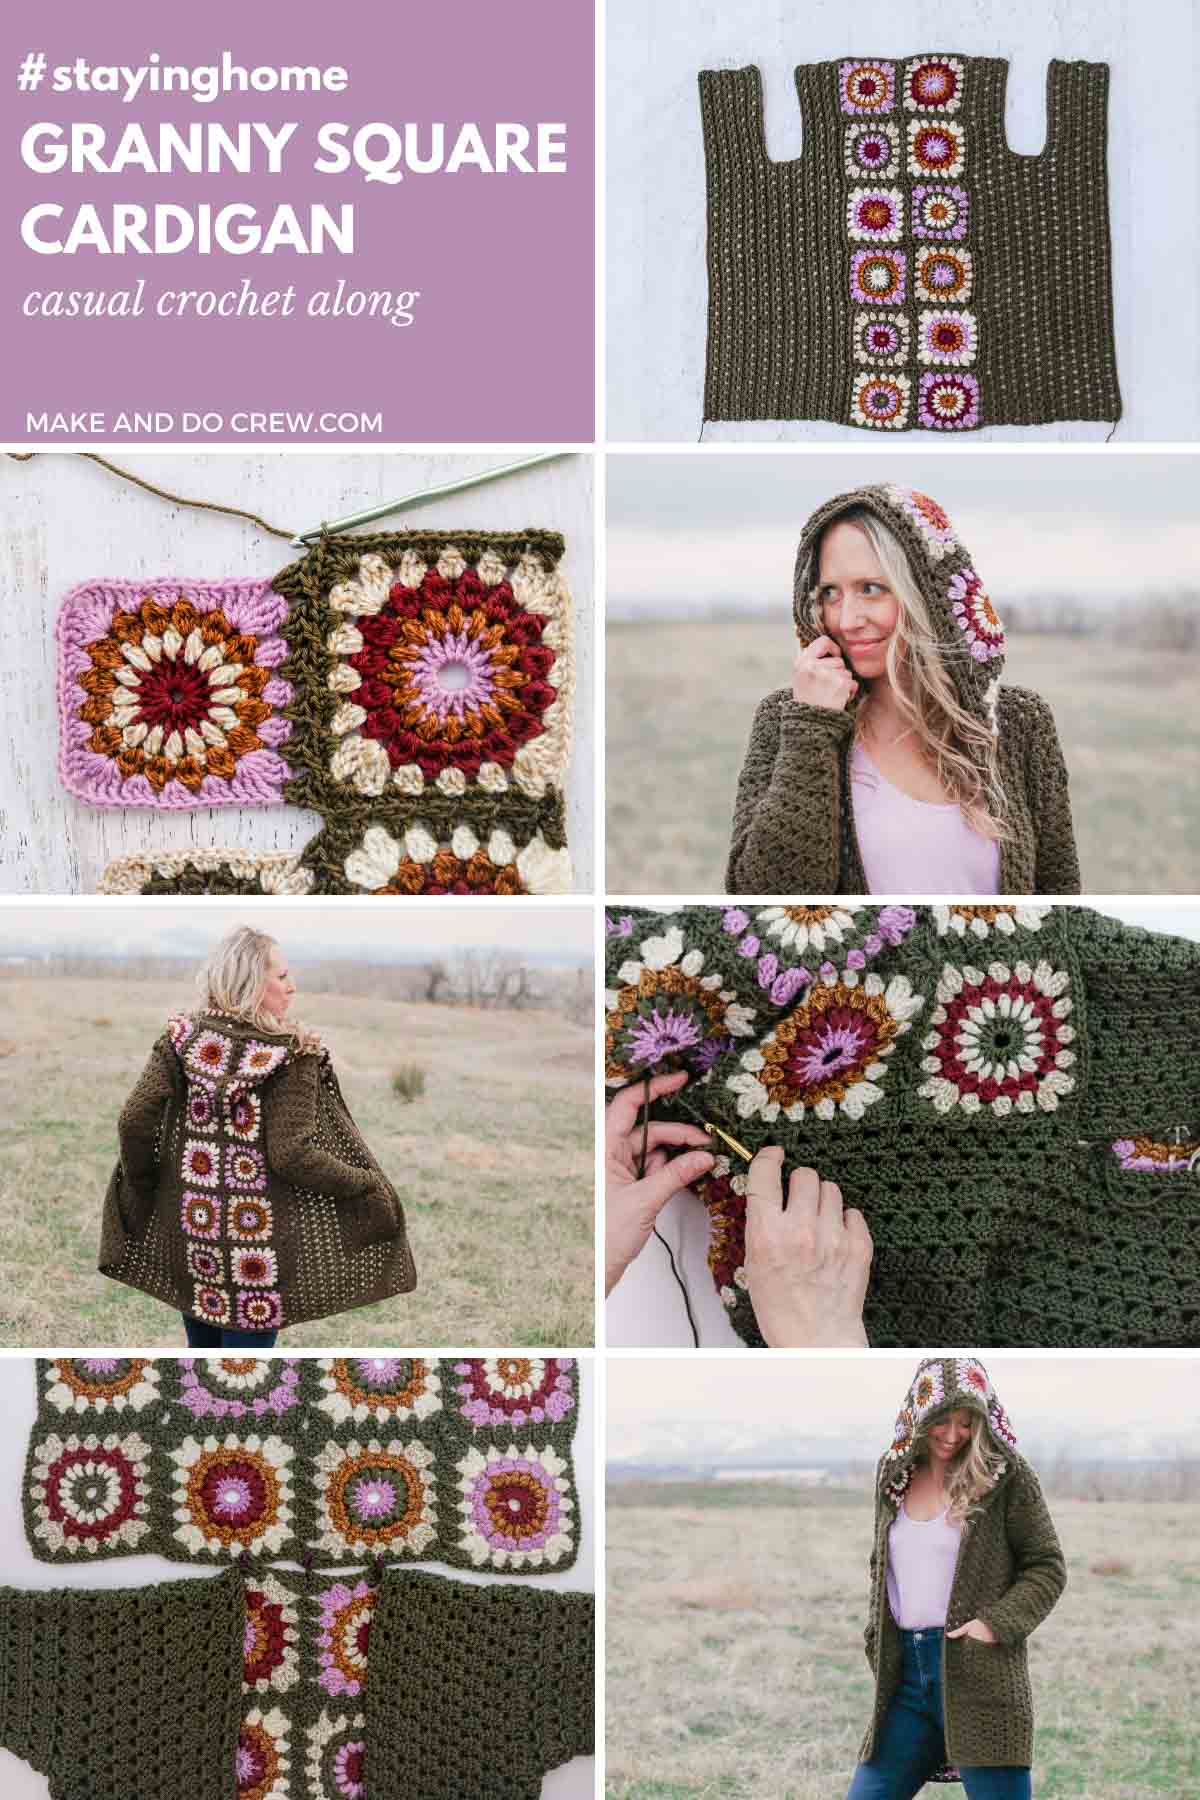 A grid of photos showing a modern crochet granny square cardigan jacket that is created with a join as you go crochet technique.